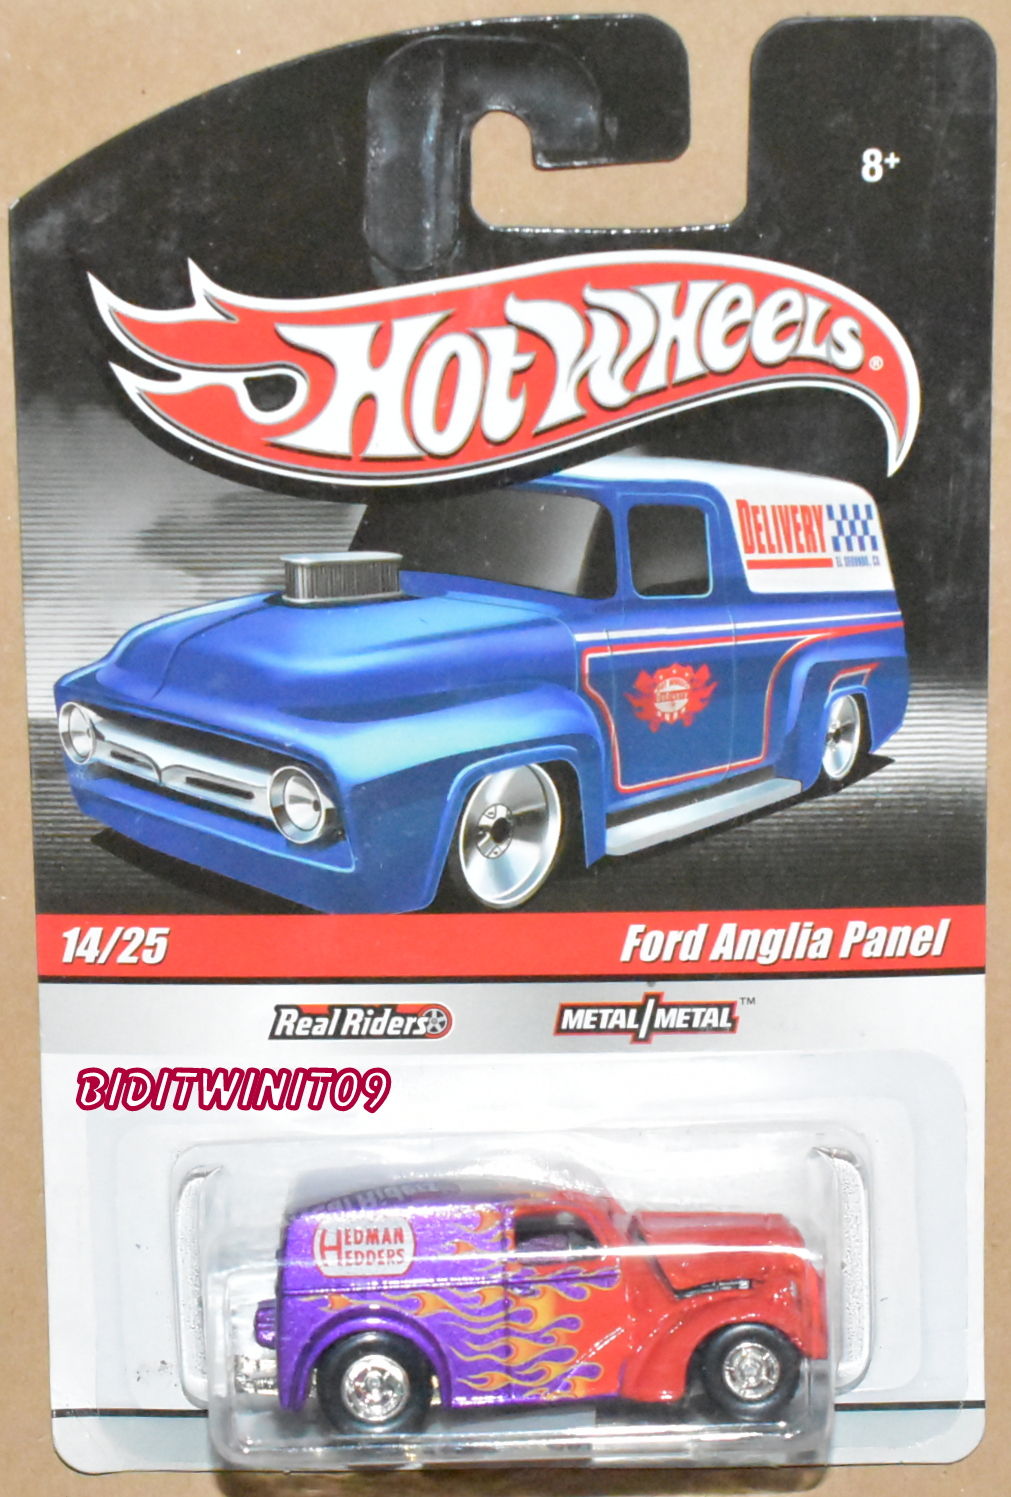 HOT WHEELS DELIVERY FORD ANGLIA PANEL #14/25 REAL RIDERS RED & PURPLE